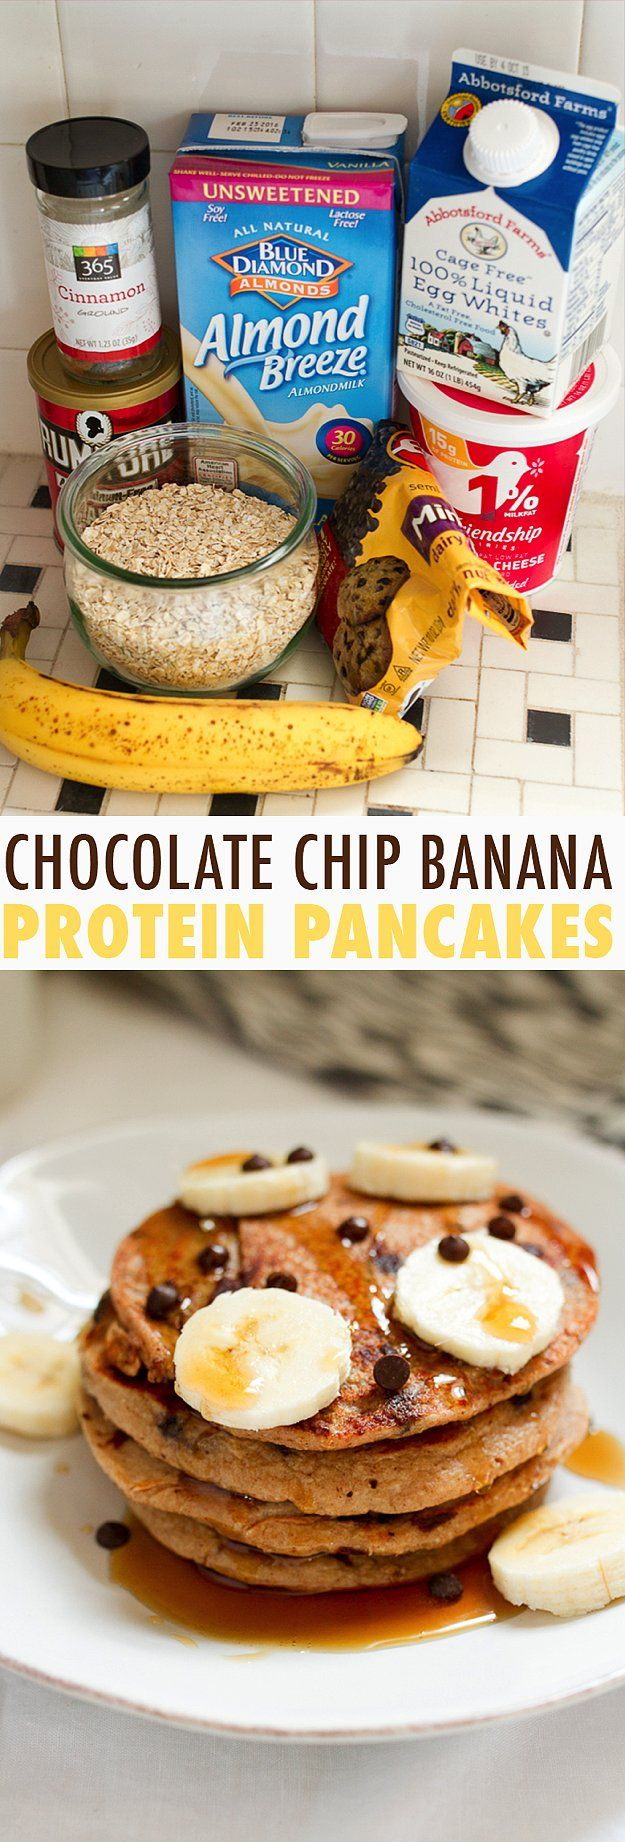 These Banana Protein Pancakes Are the Perfect Breakfast Treat